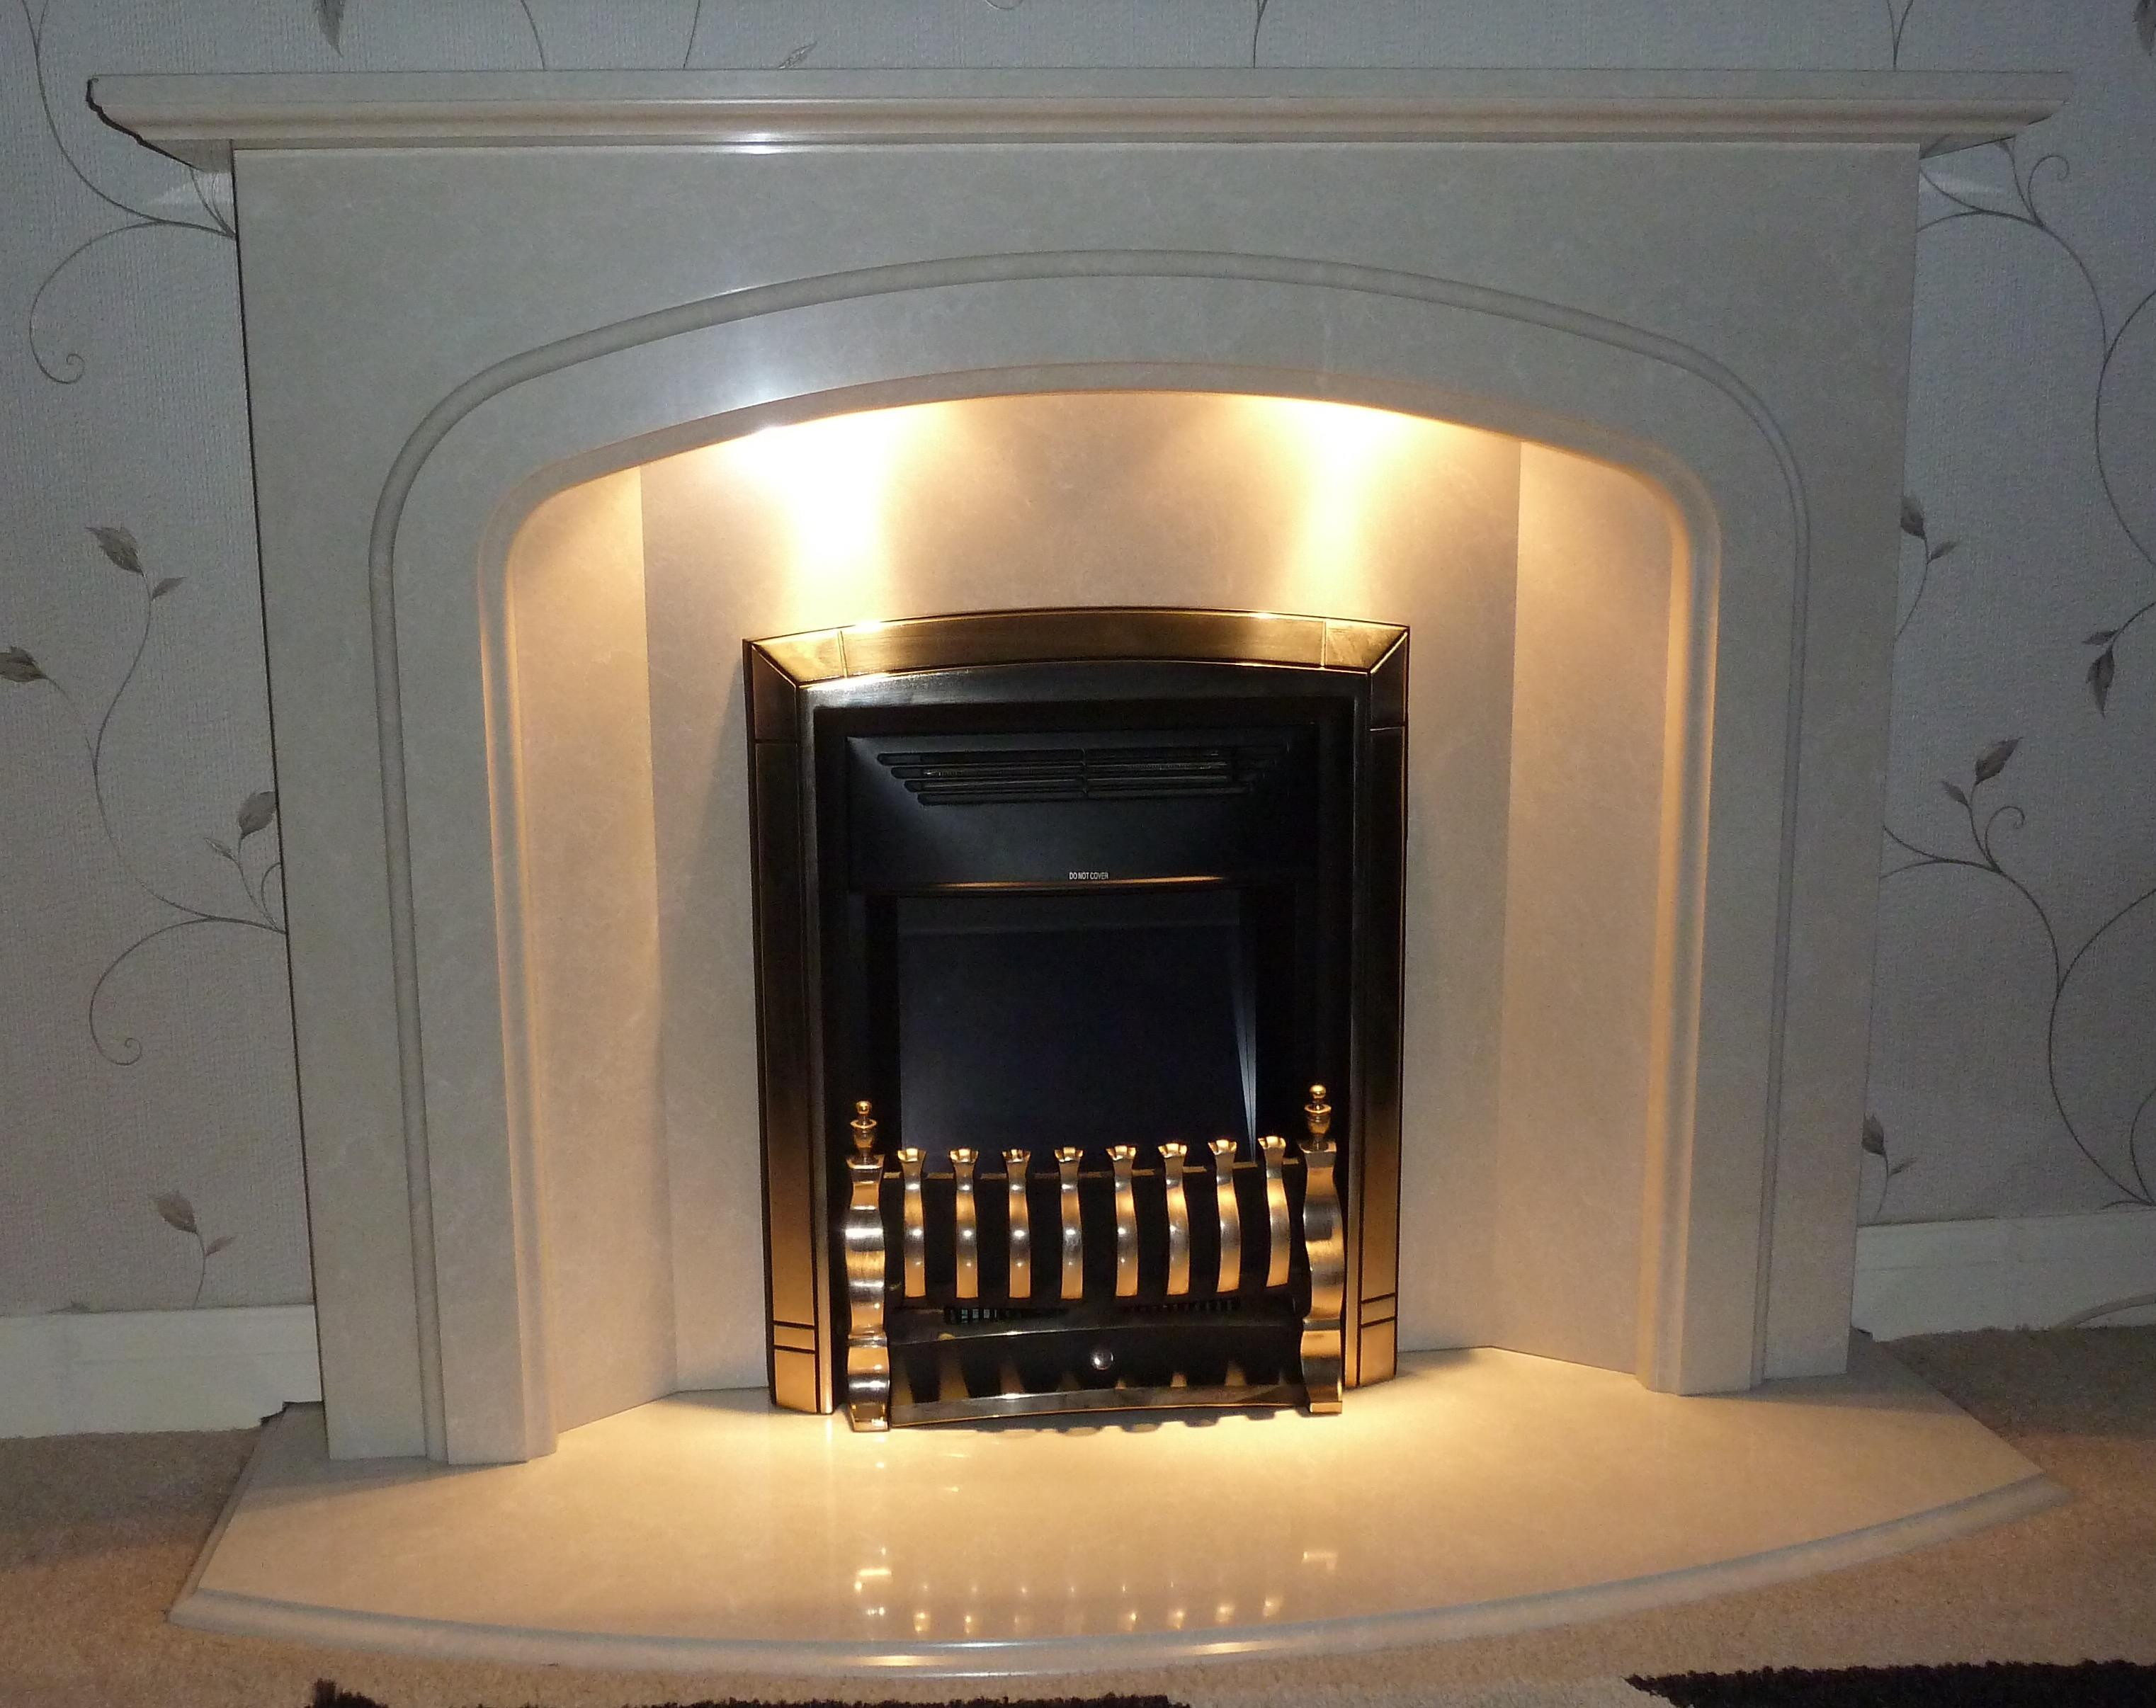 Electric Dream Fire Effect Heater with Marble Mantlepiece